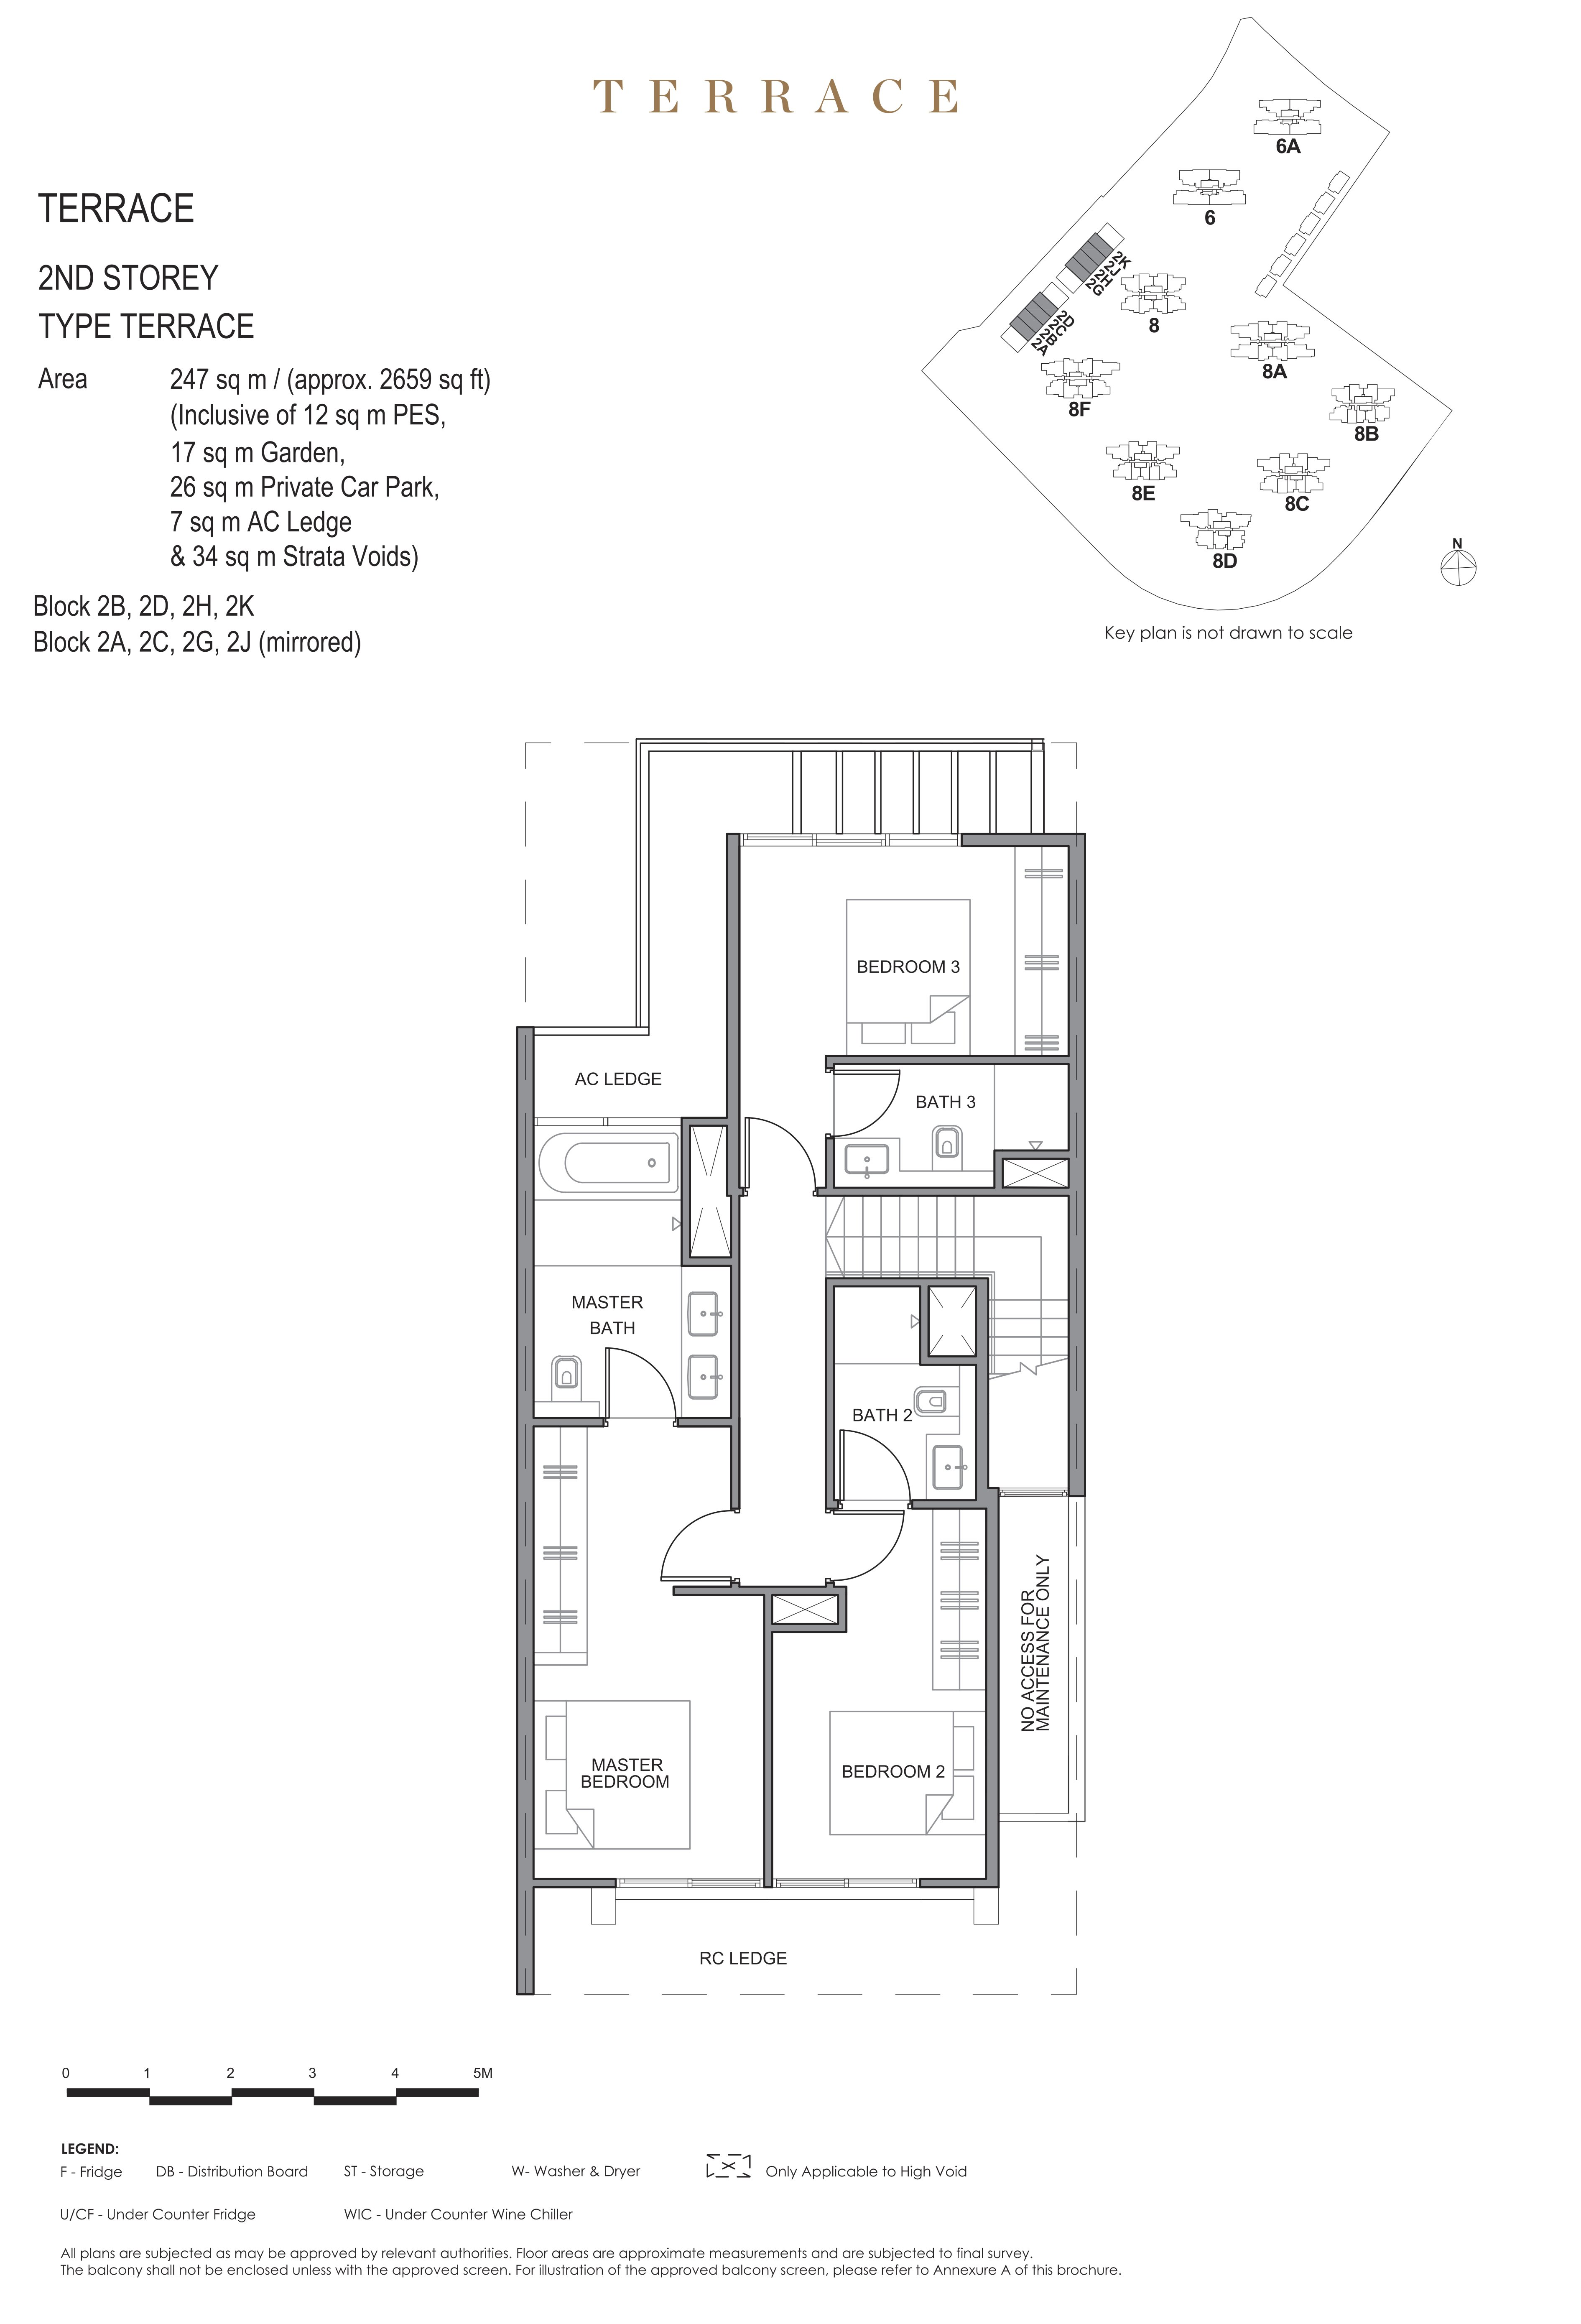 Parc Clematis 锦泰门第 masterpiece Intermediate Terrace 2nd storey